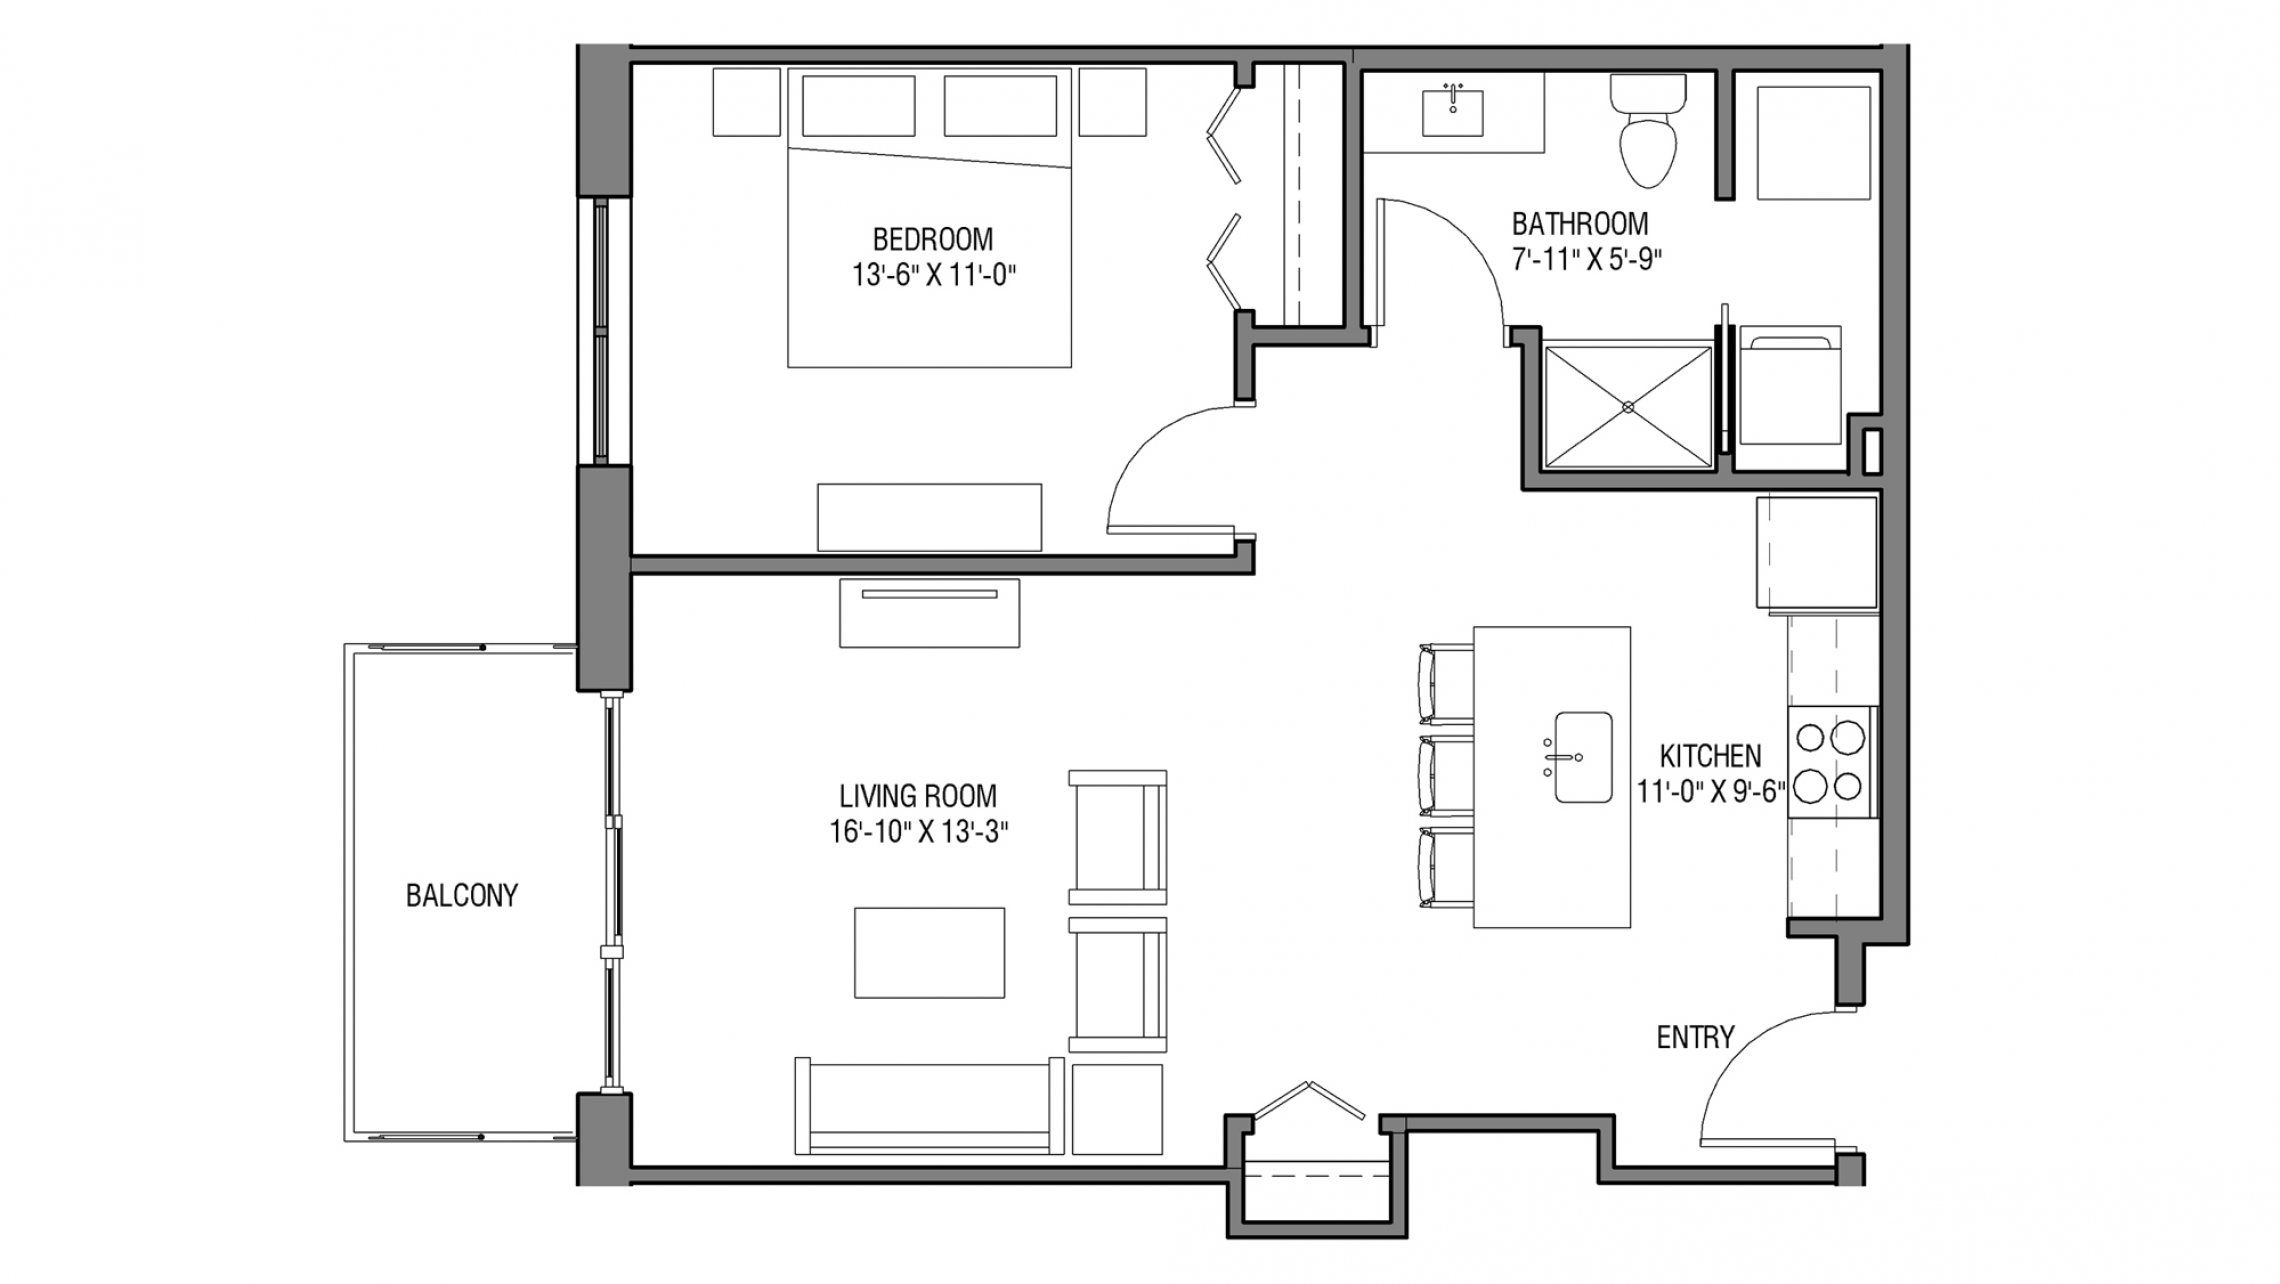 ULI Nine Line 418 - One Bedroom, One Bathroom